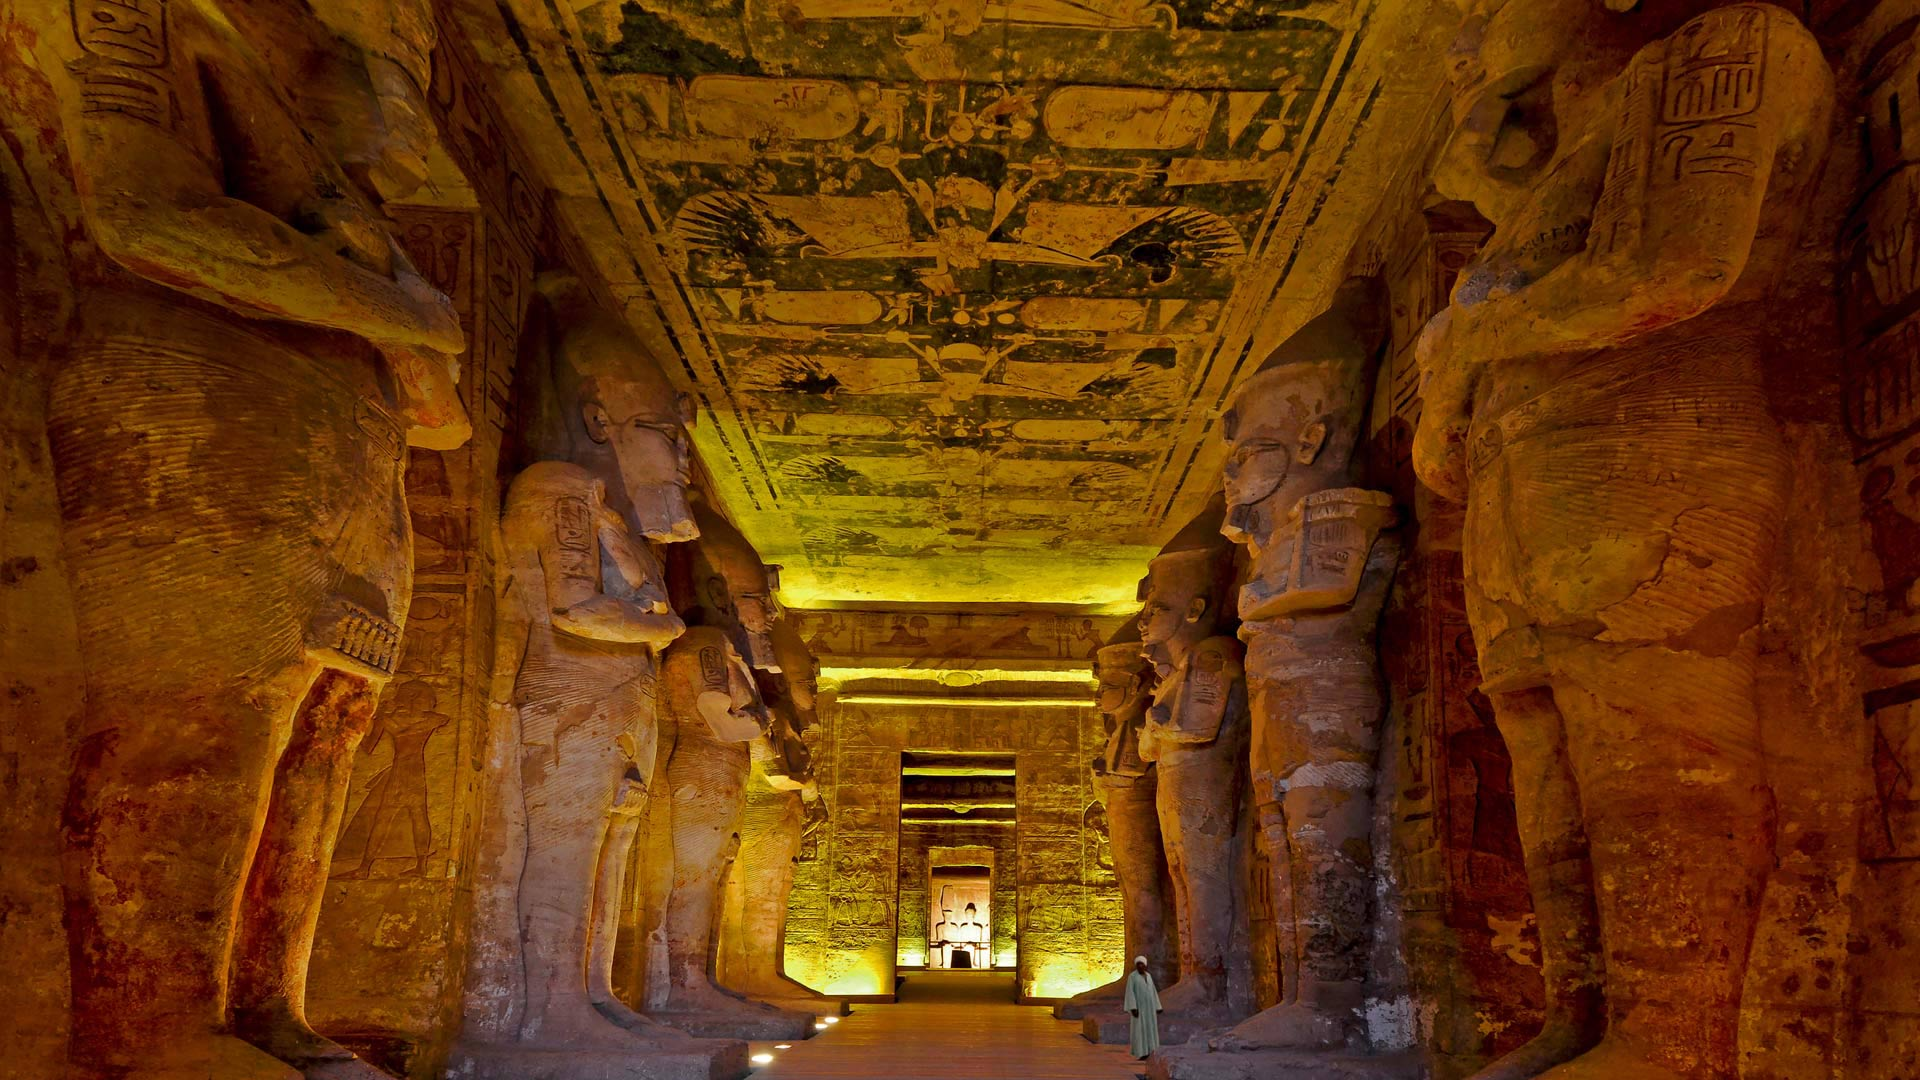 The interior of the Great Temple of Ramesses II, Abu Simbel, Egypt (© Nick Brundle Photography/Getty Images)(Bing United States)